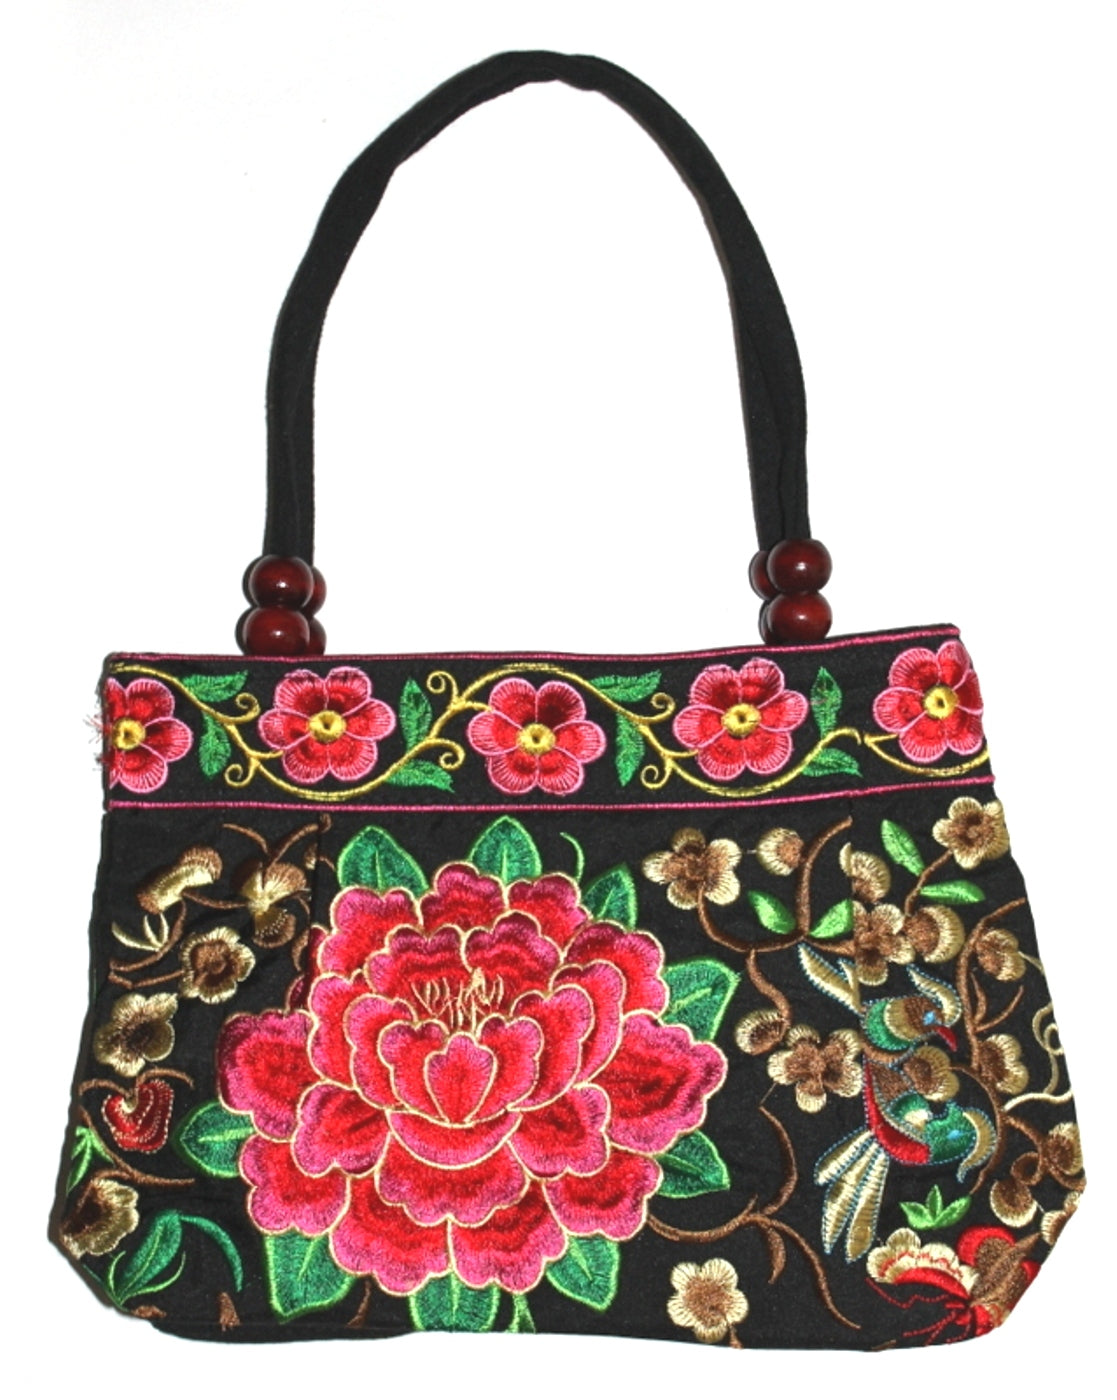 92f17d5c68a Fashion Accessory: Trendy Floral Embroidered Women's Handbag, double handle  with ...